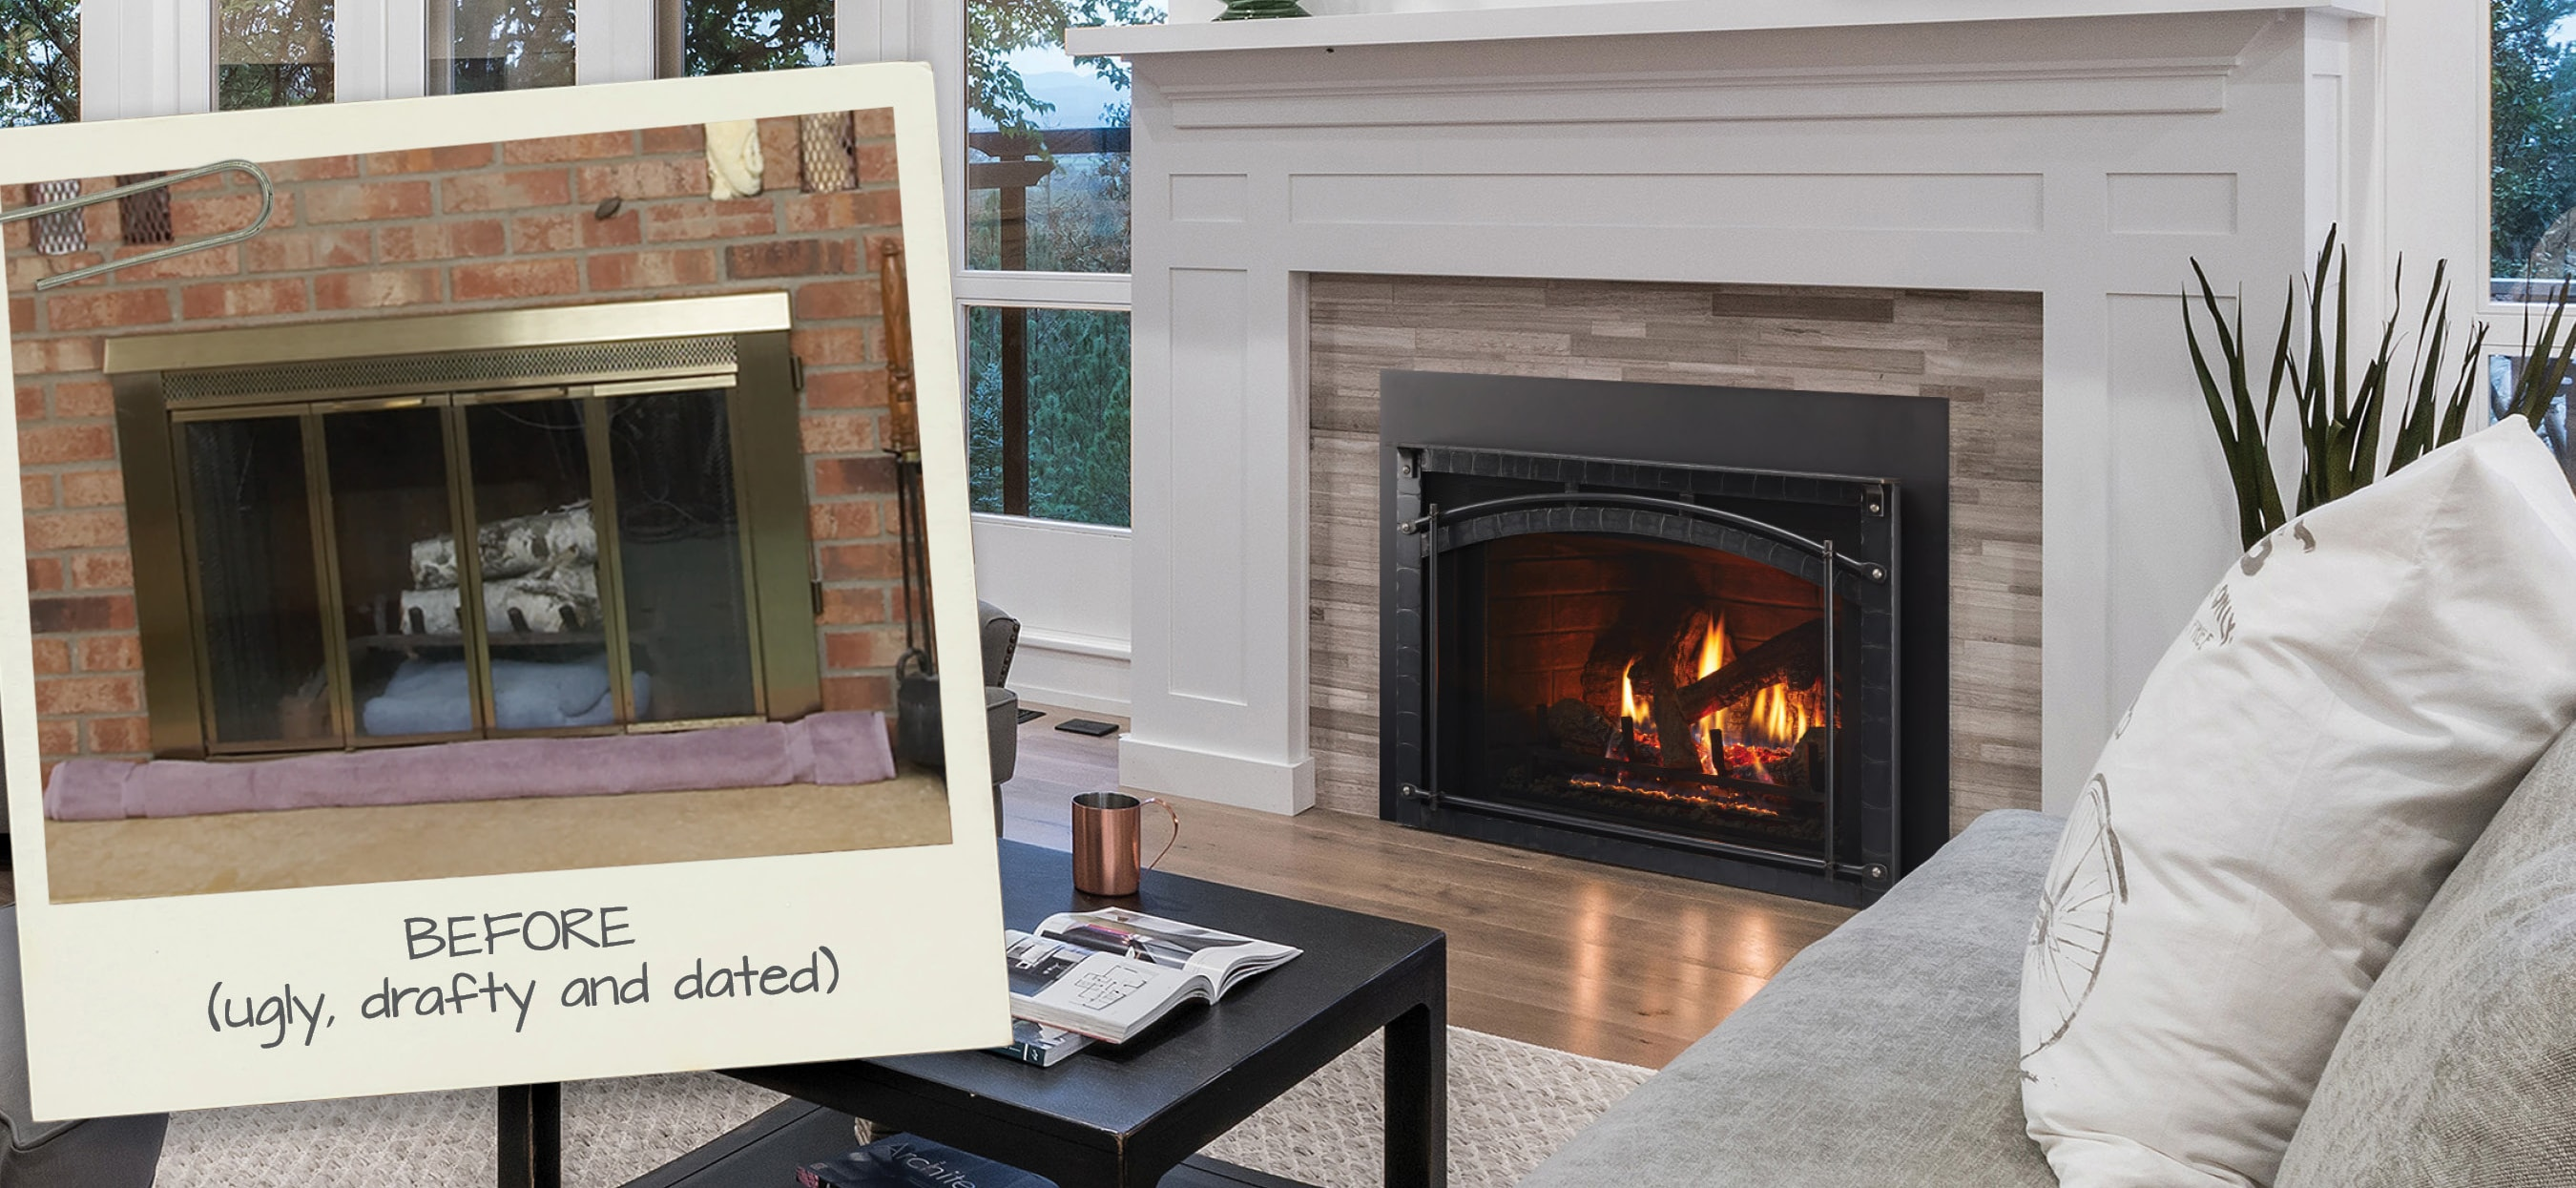 Say Bye Bye To Brass With A Fireplace Makeover Heat Glo